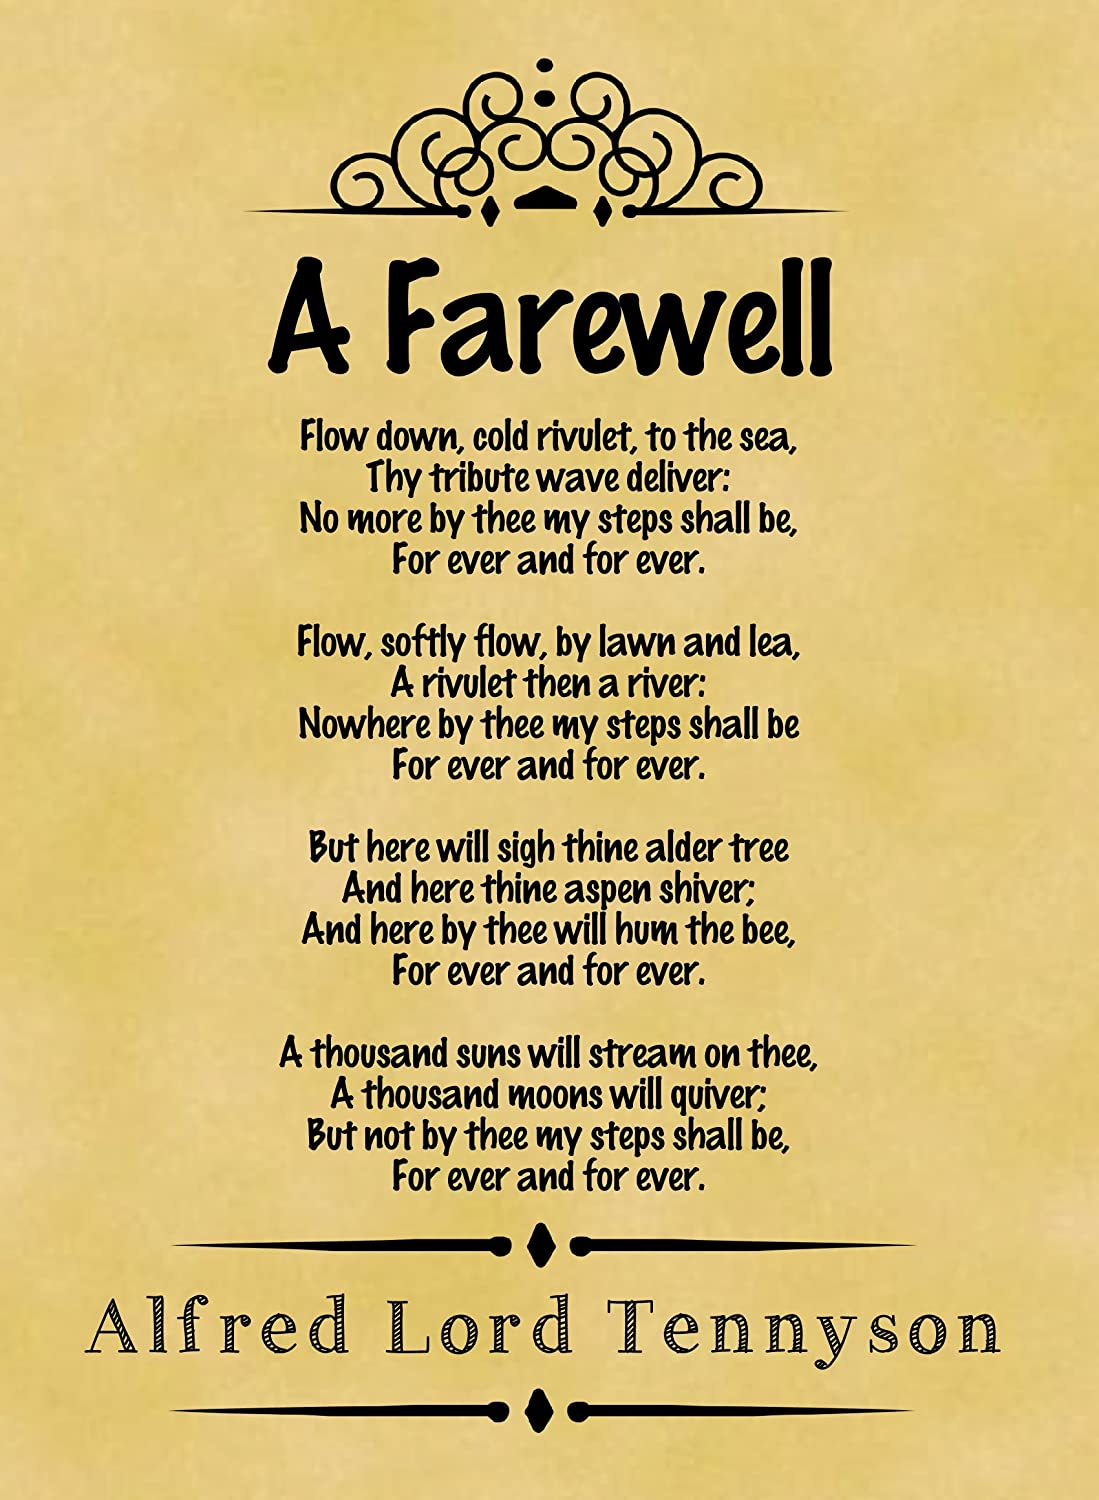 amazon com parchment style card greetings card 14cm x 10cm amazon com parchment style card greetings card 14cm x 10cm classic poem alfred lord tennyson a farewell home kitchen